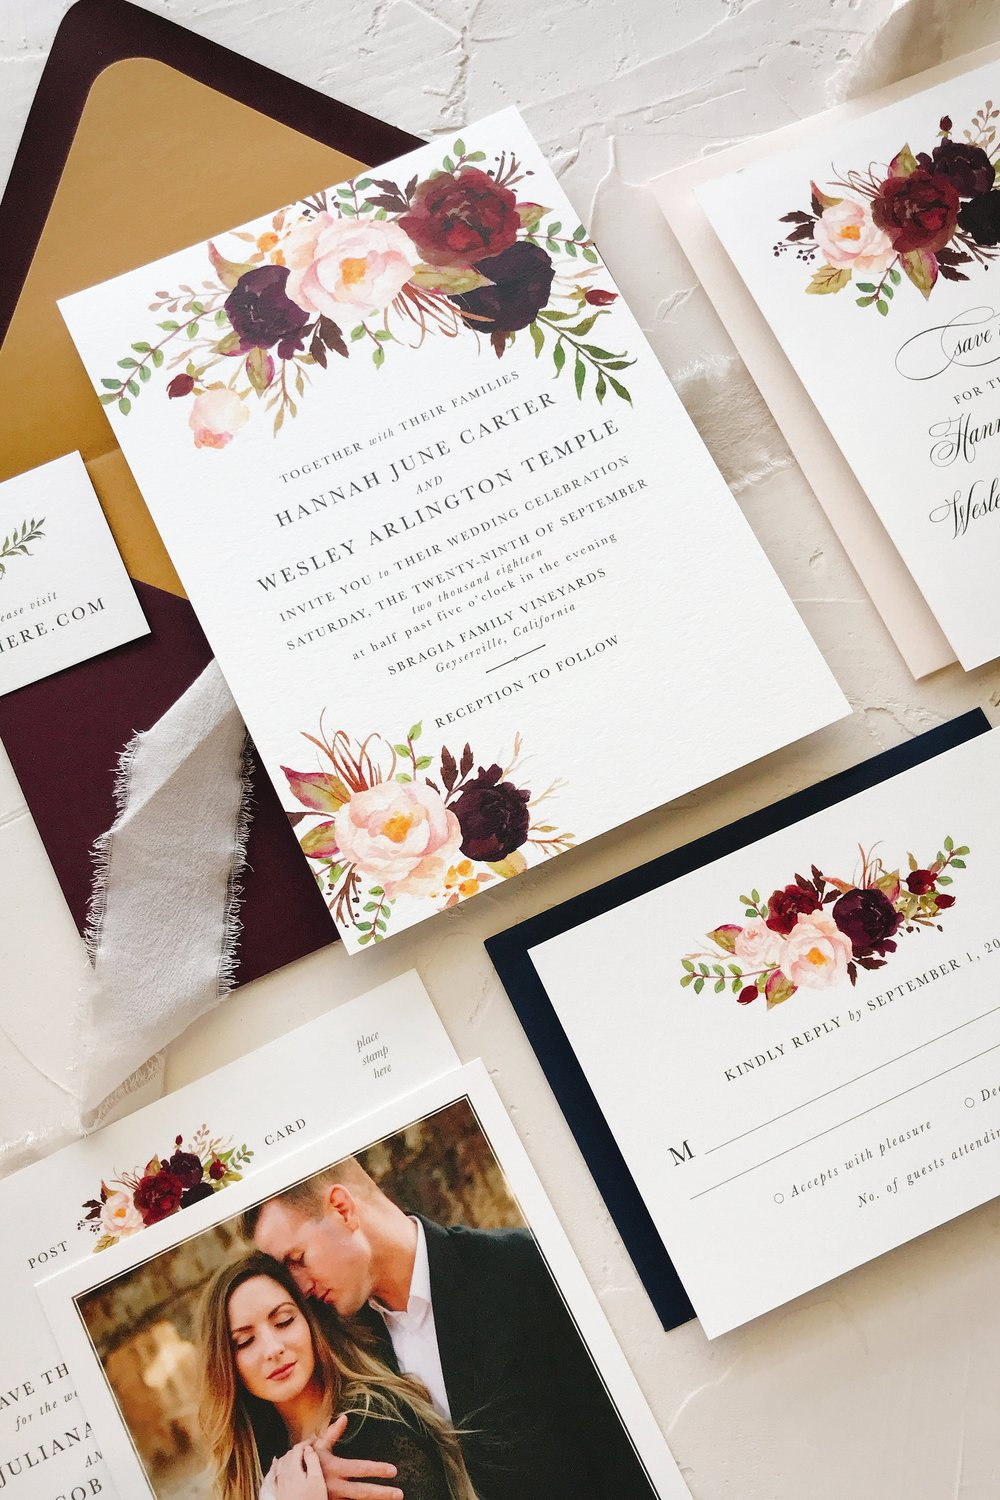 Burgundy Wedding Invitations.jpg